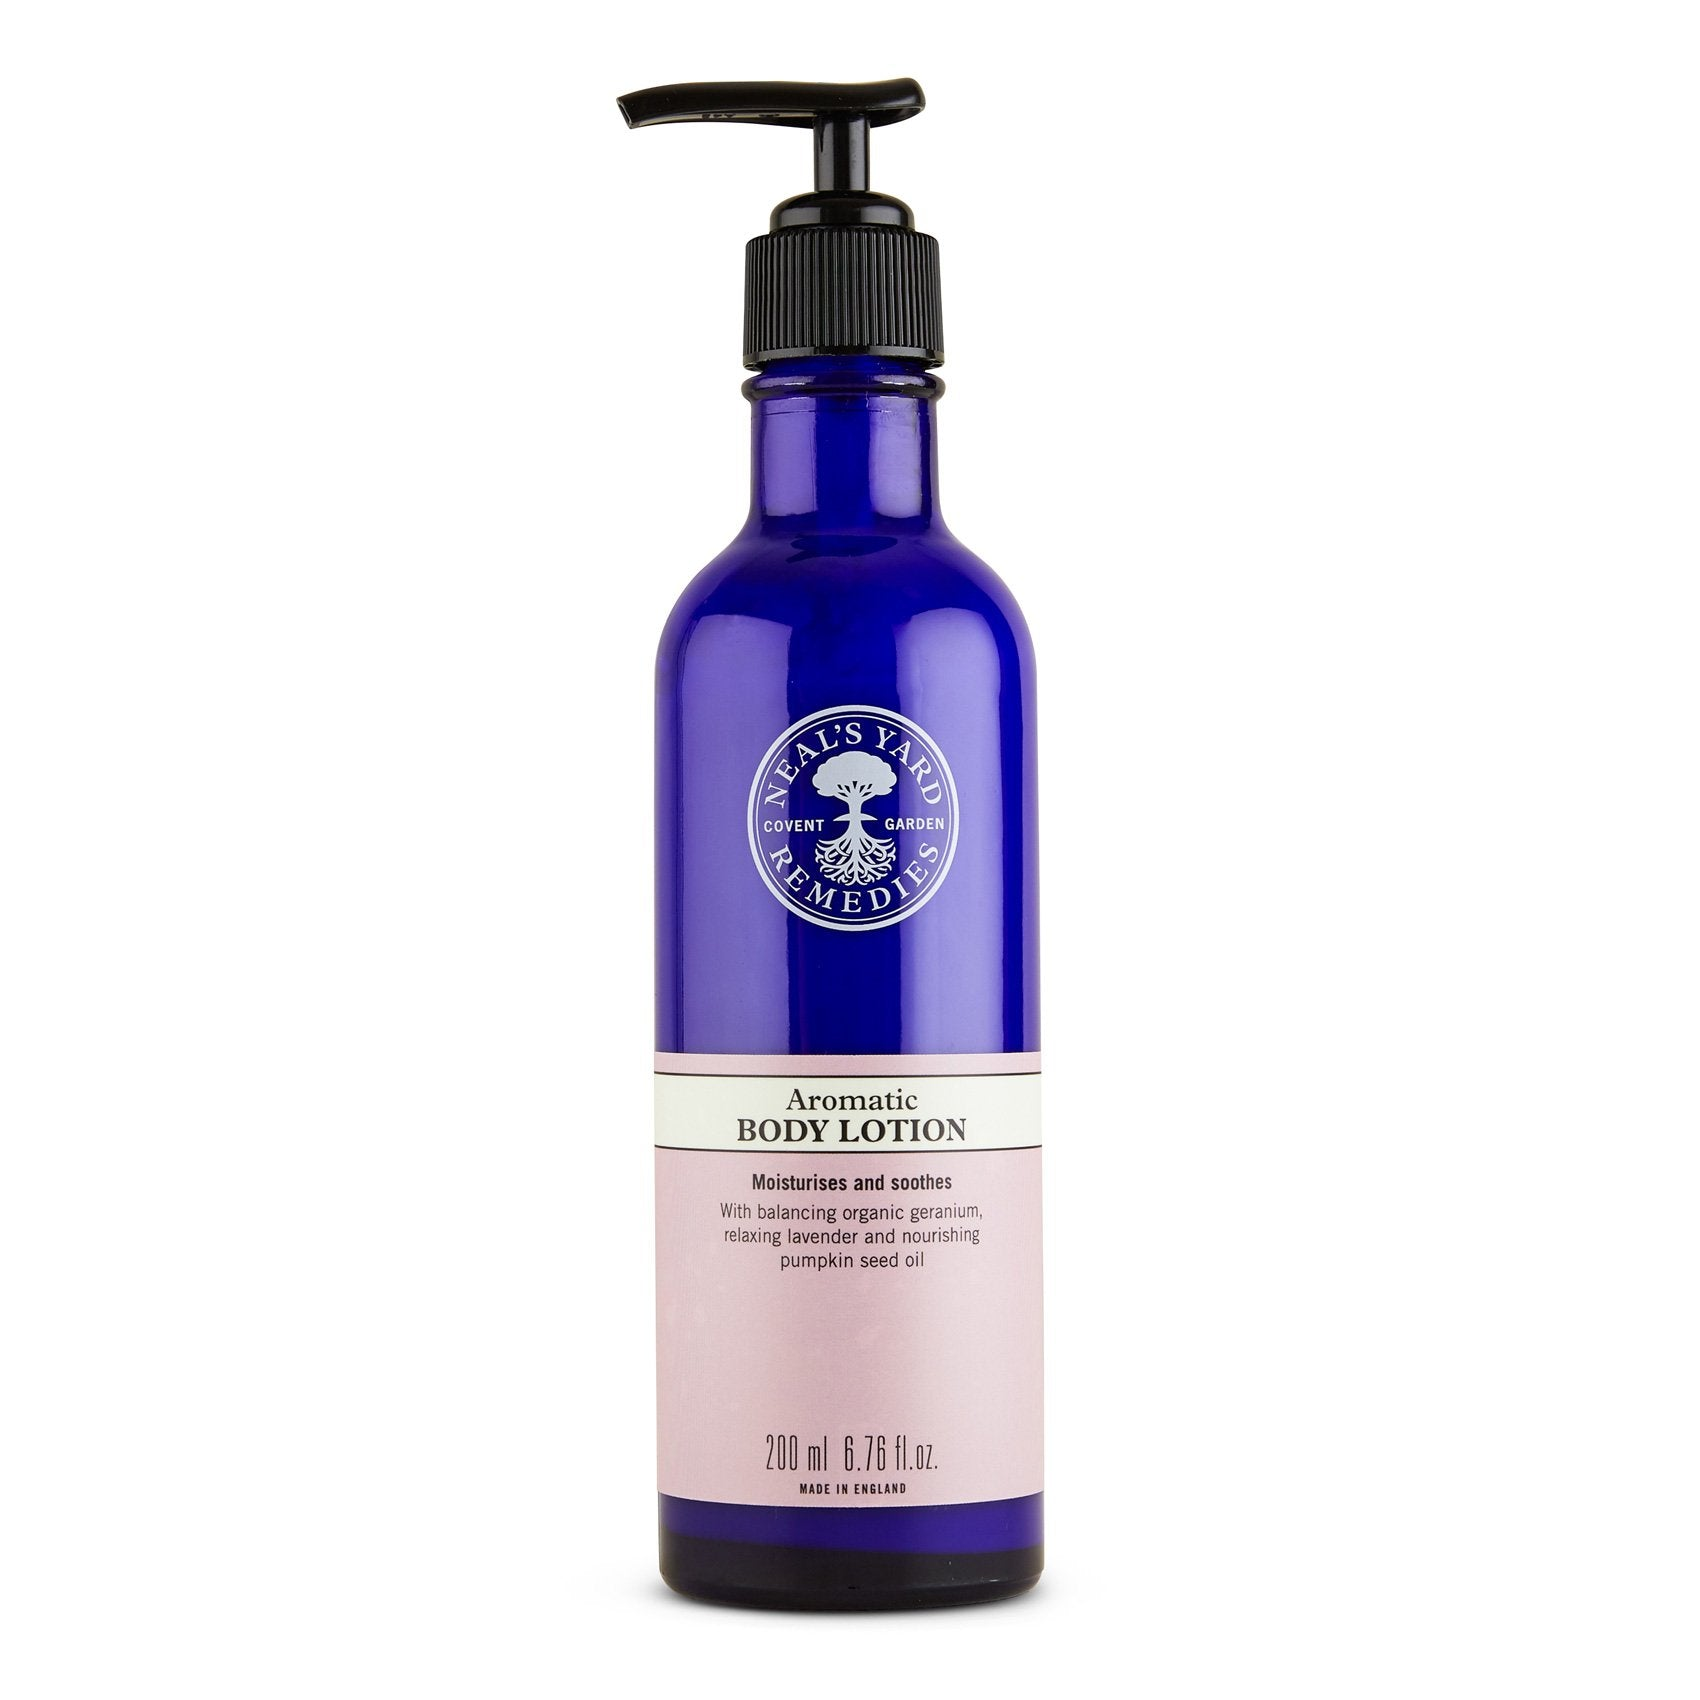 Aromatic Body Lotion